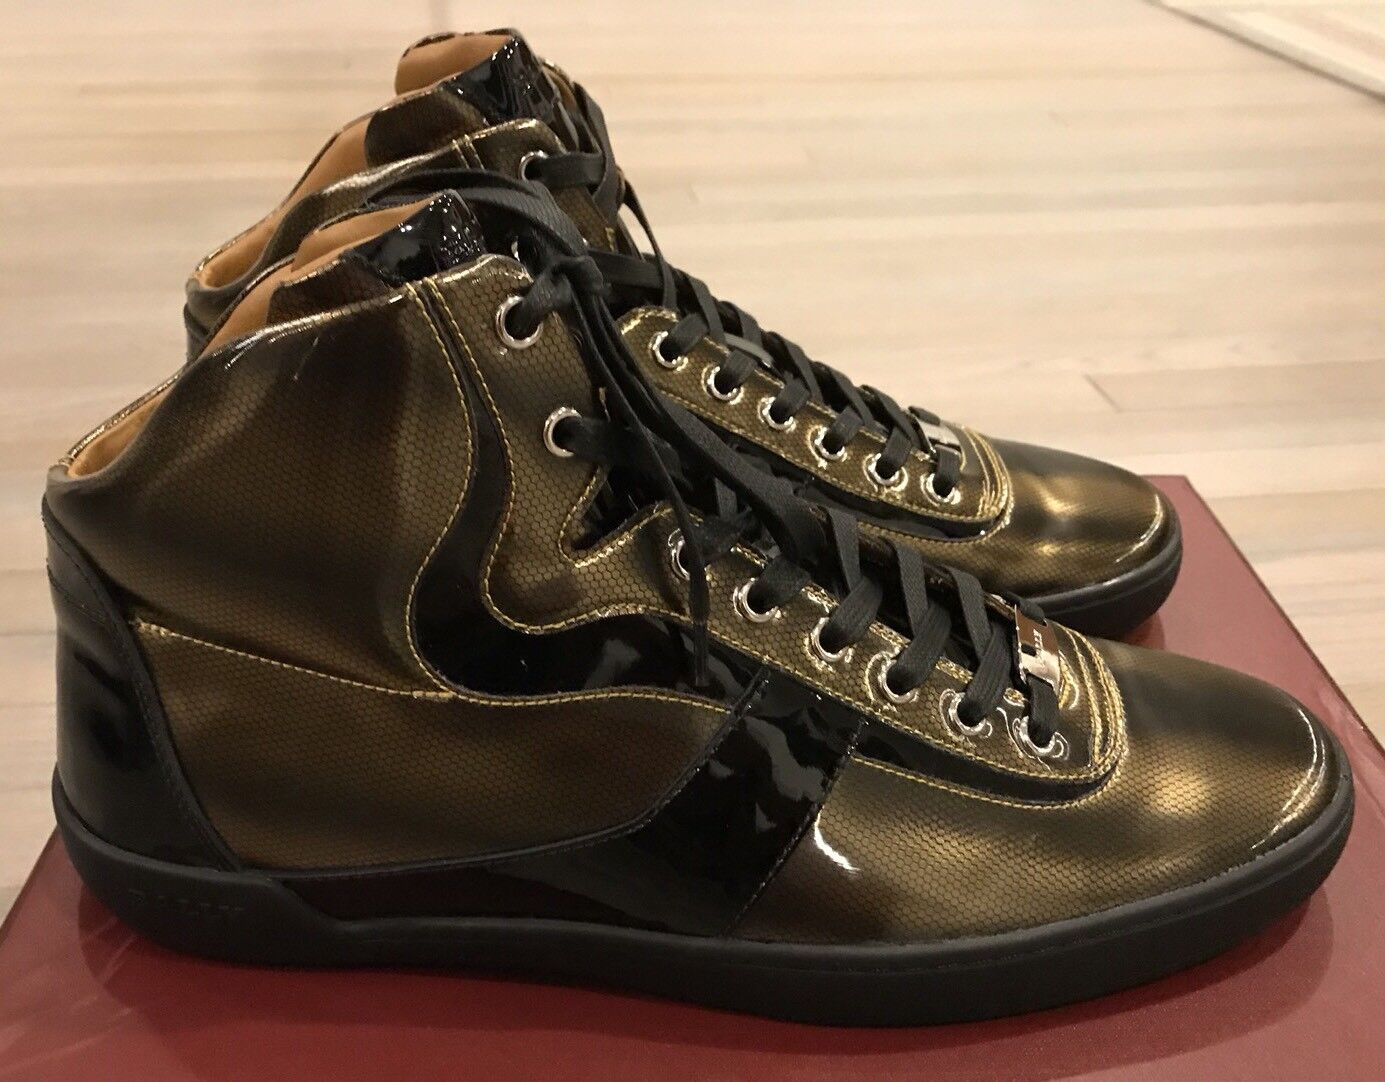 700 Bally Eroy 01 size oro High Tops 01 size 01 Tops 14 df7804   45f432